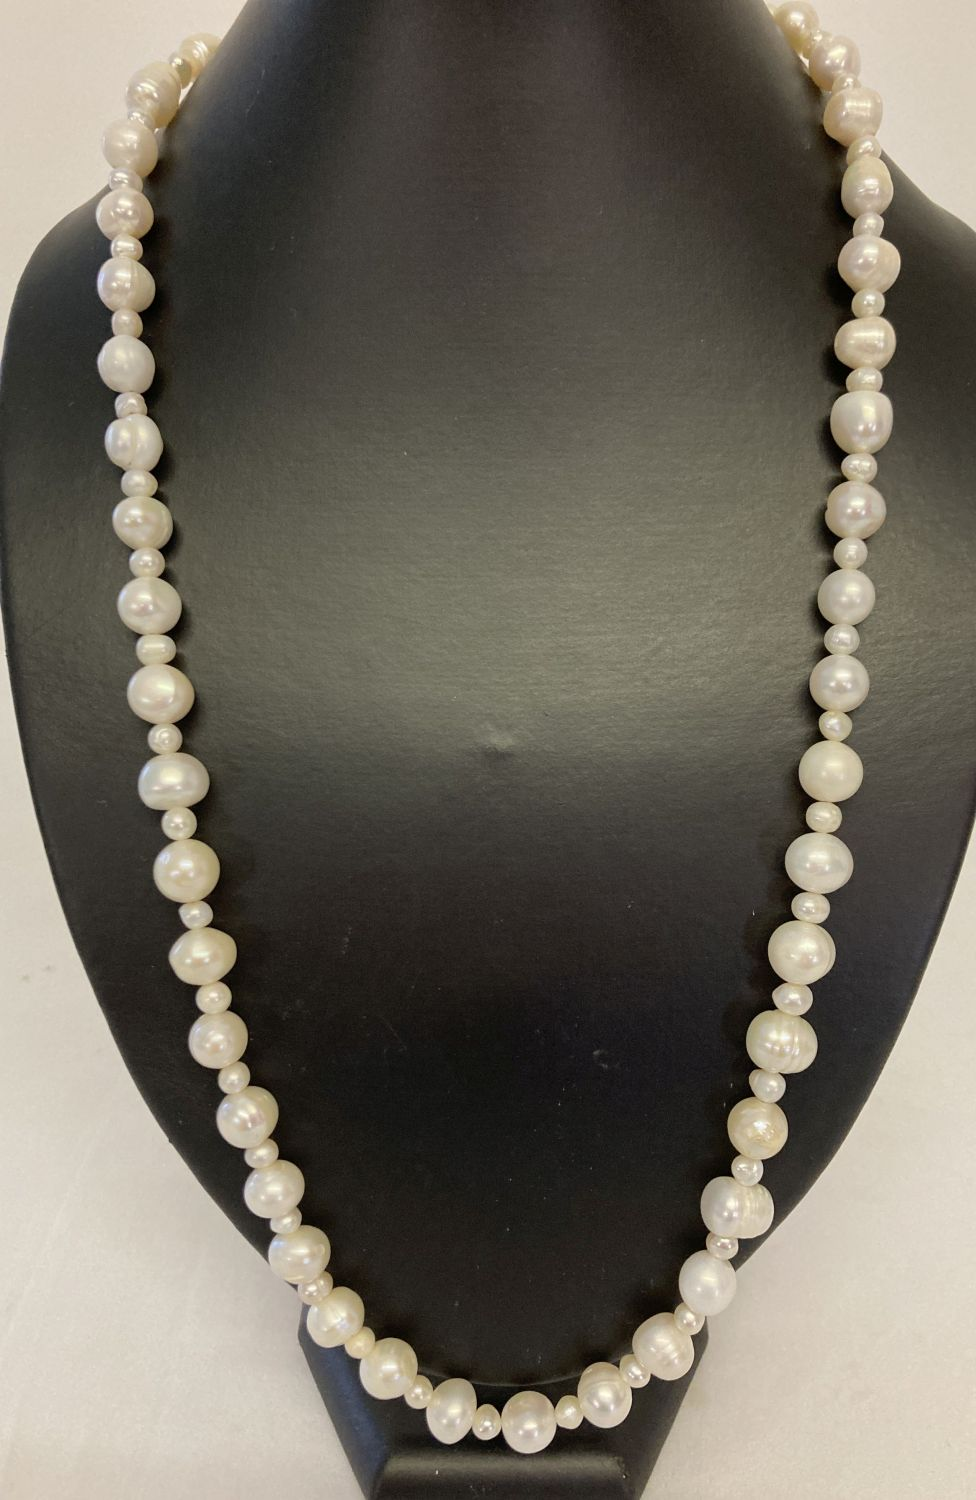 """A 26"""" beaded necklace made from alternating large and small freshwater pearls."""